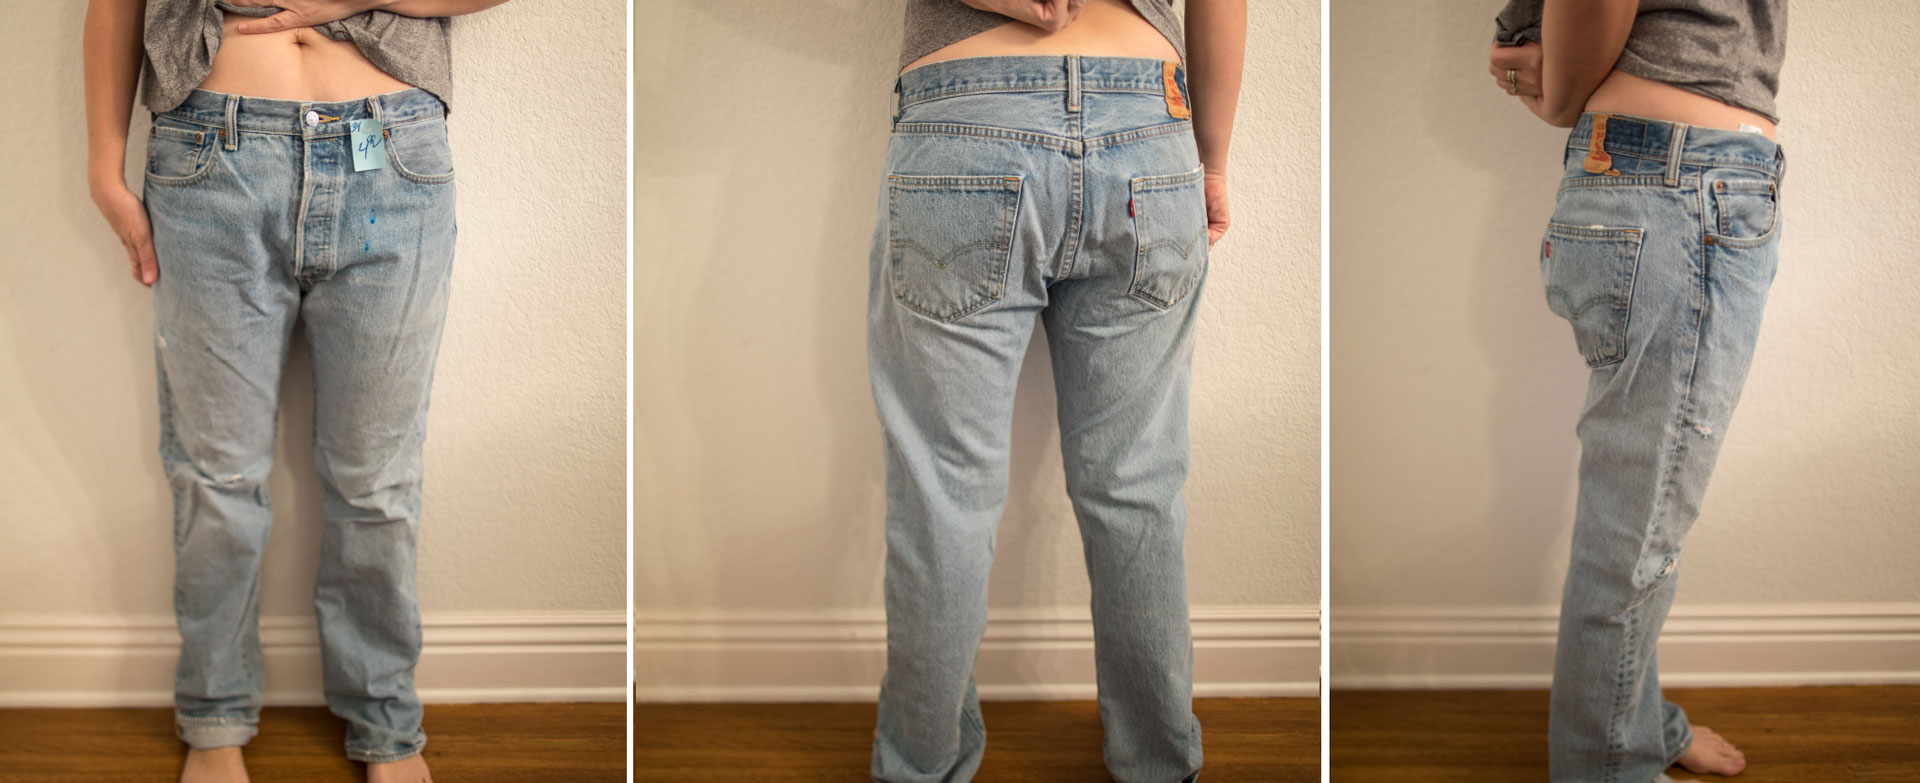 Finding The Right Jeans Vintage Levi S Fit Guide This Mom S